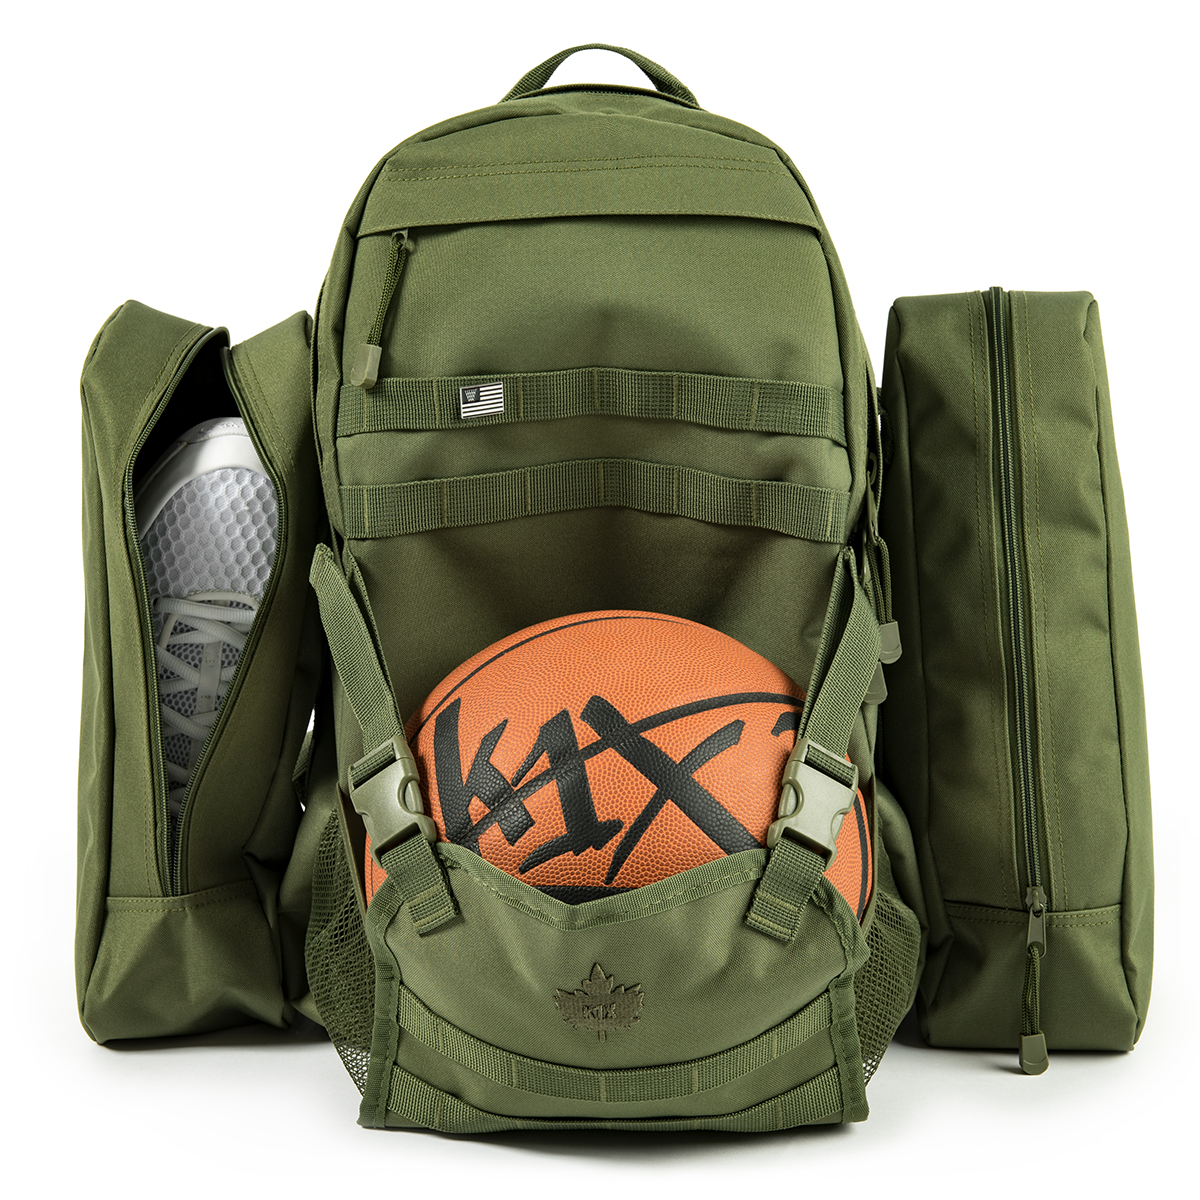 Rucksack Olivgrün K1x Basketball Rucksack On A Mission Backpack Olive